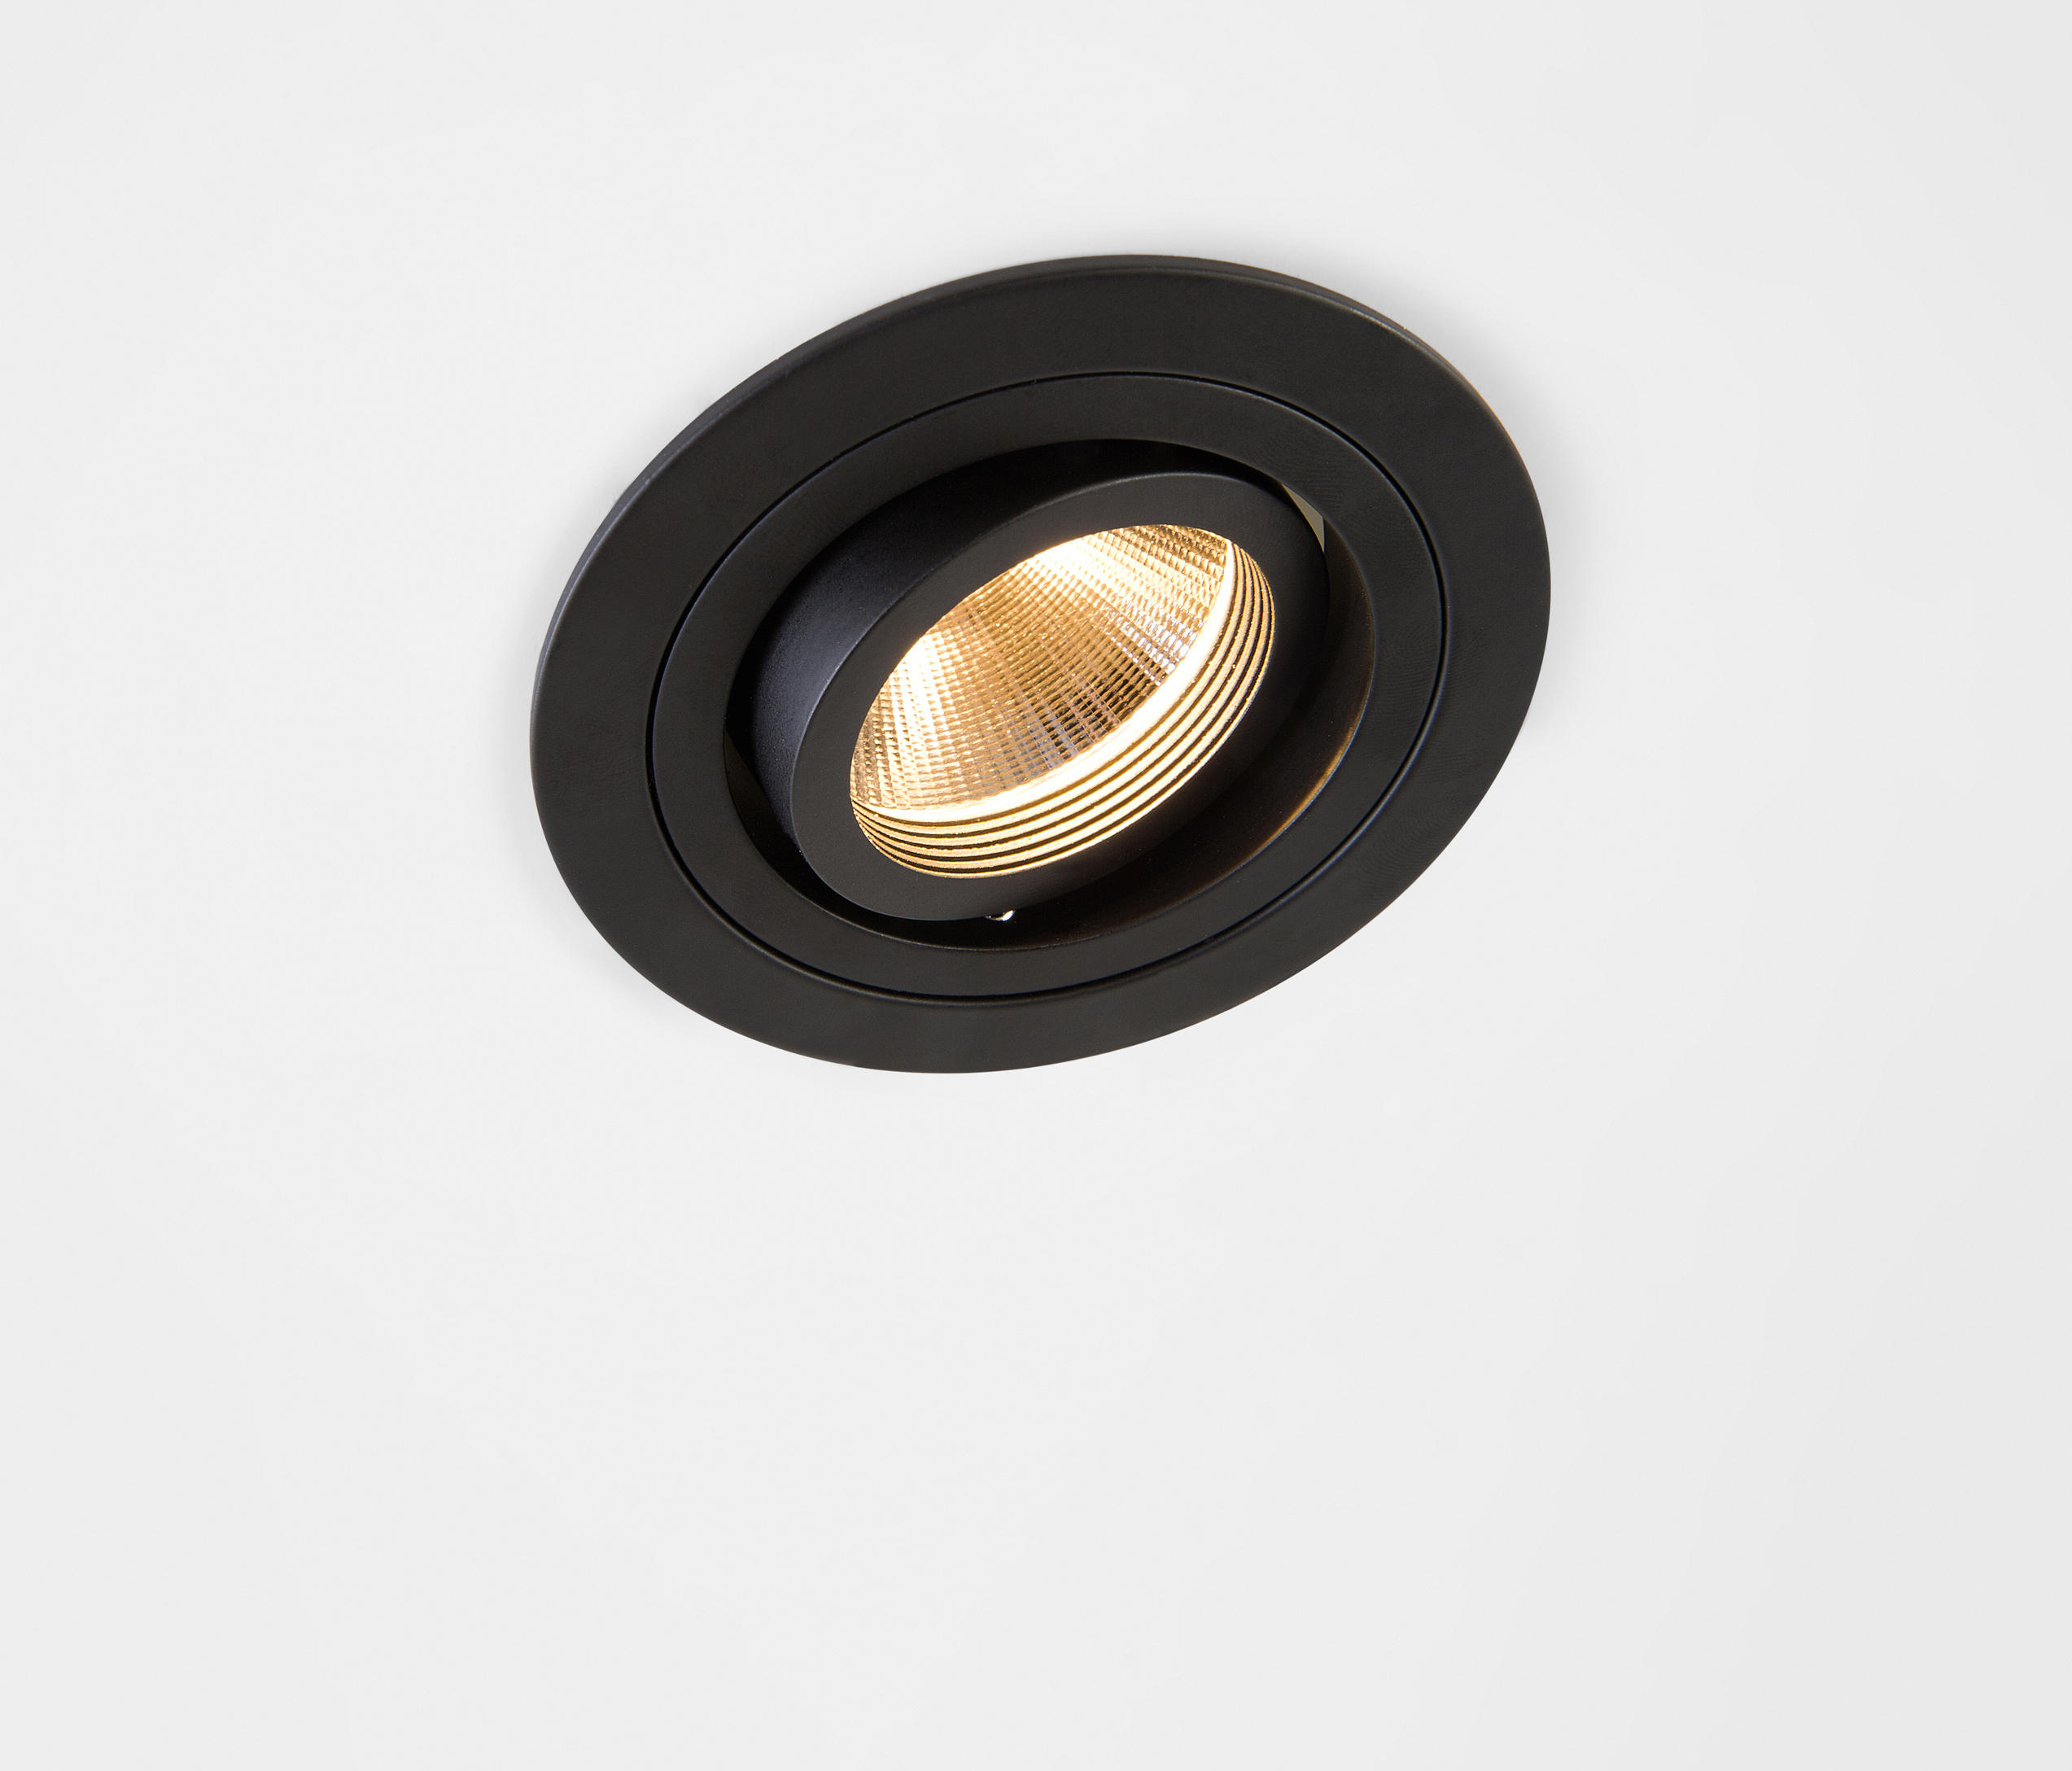 k 1 89 led rg spotlights from modular lighting. Black Bedroom Furniture Sets. Home Design Ideas